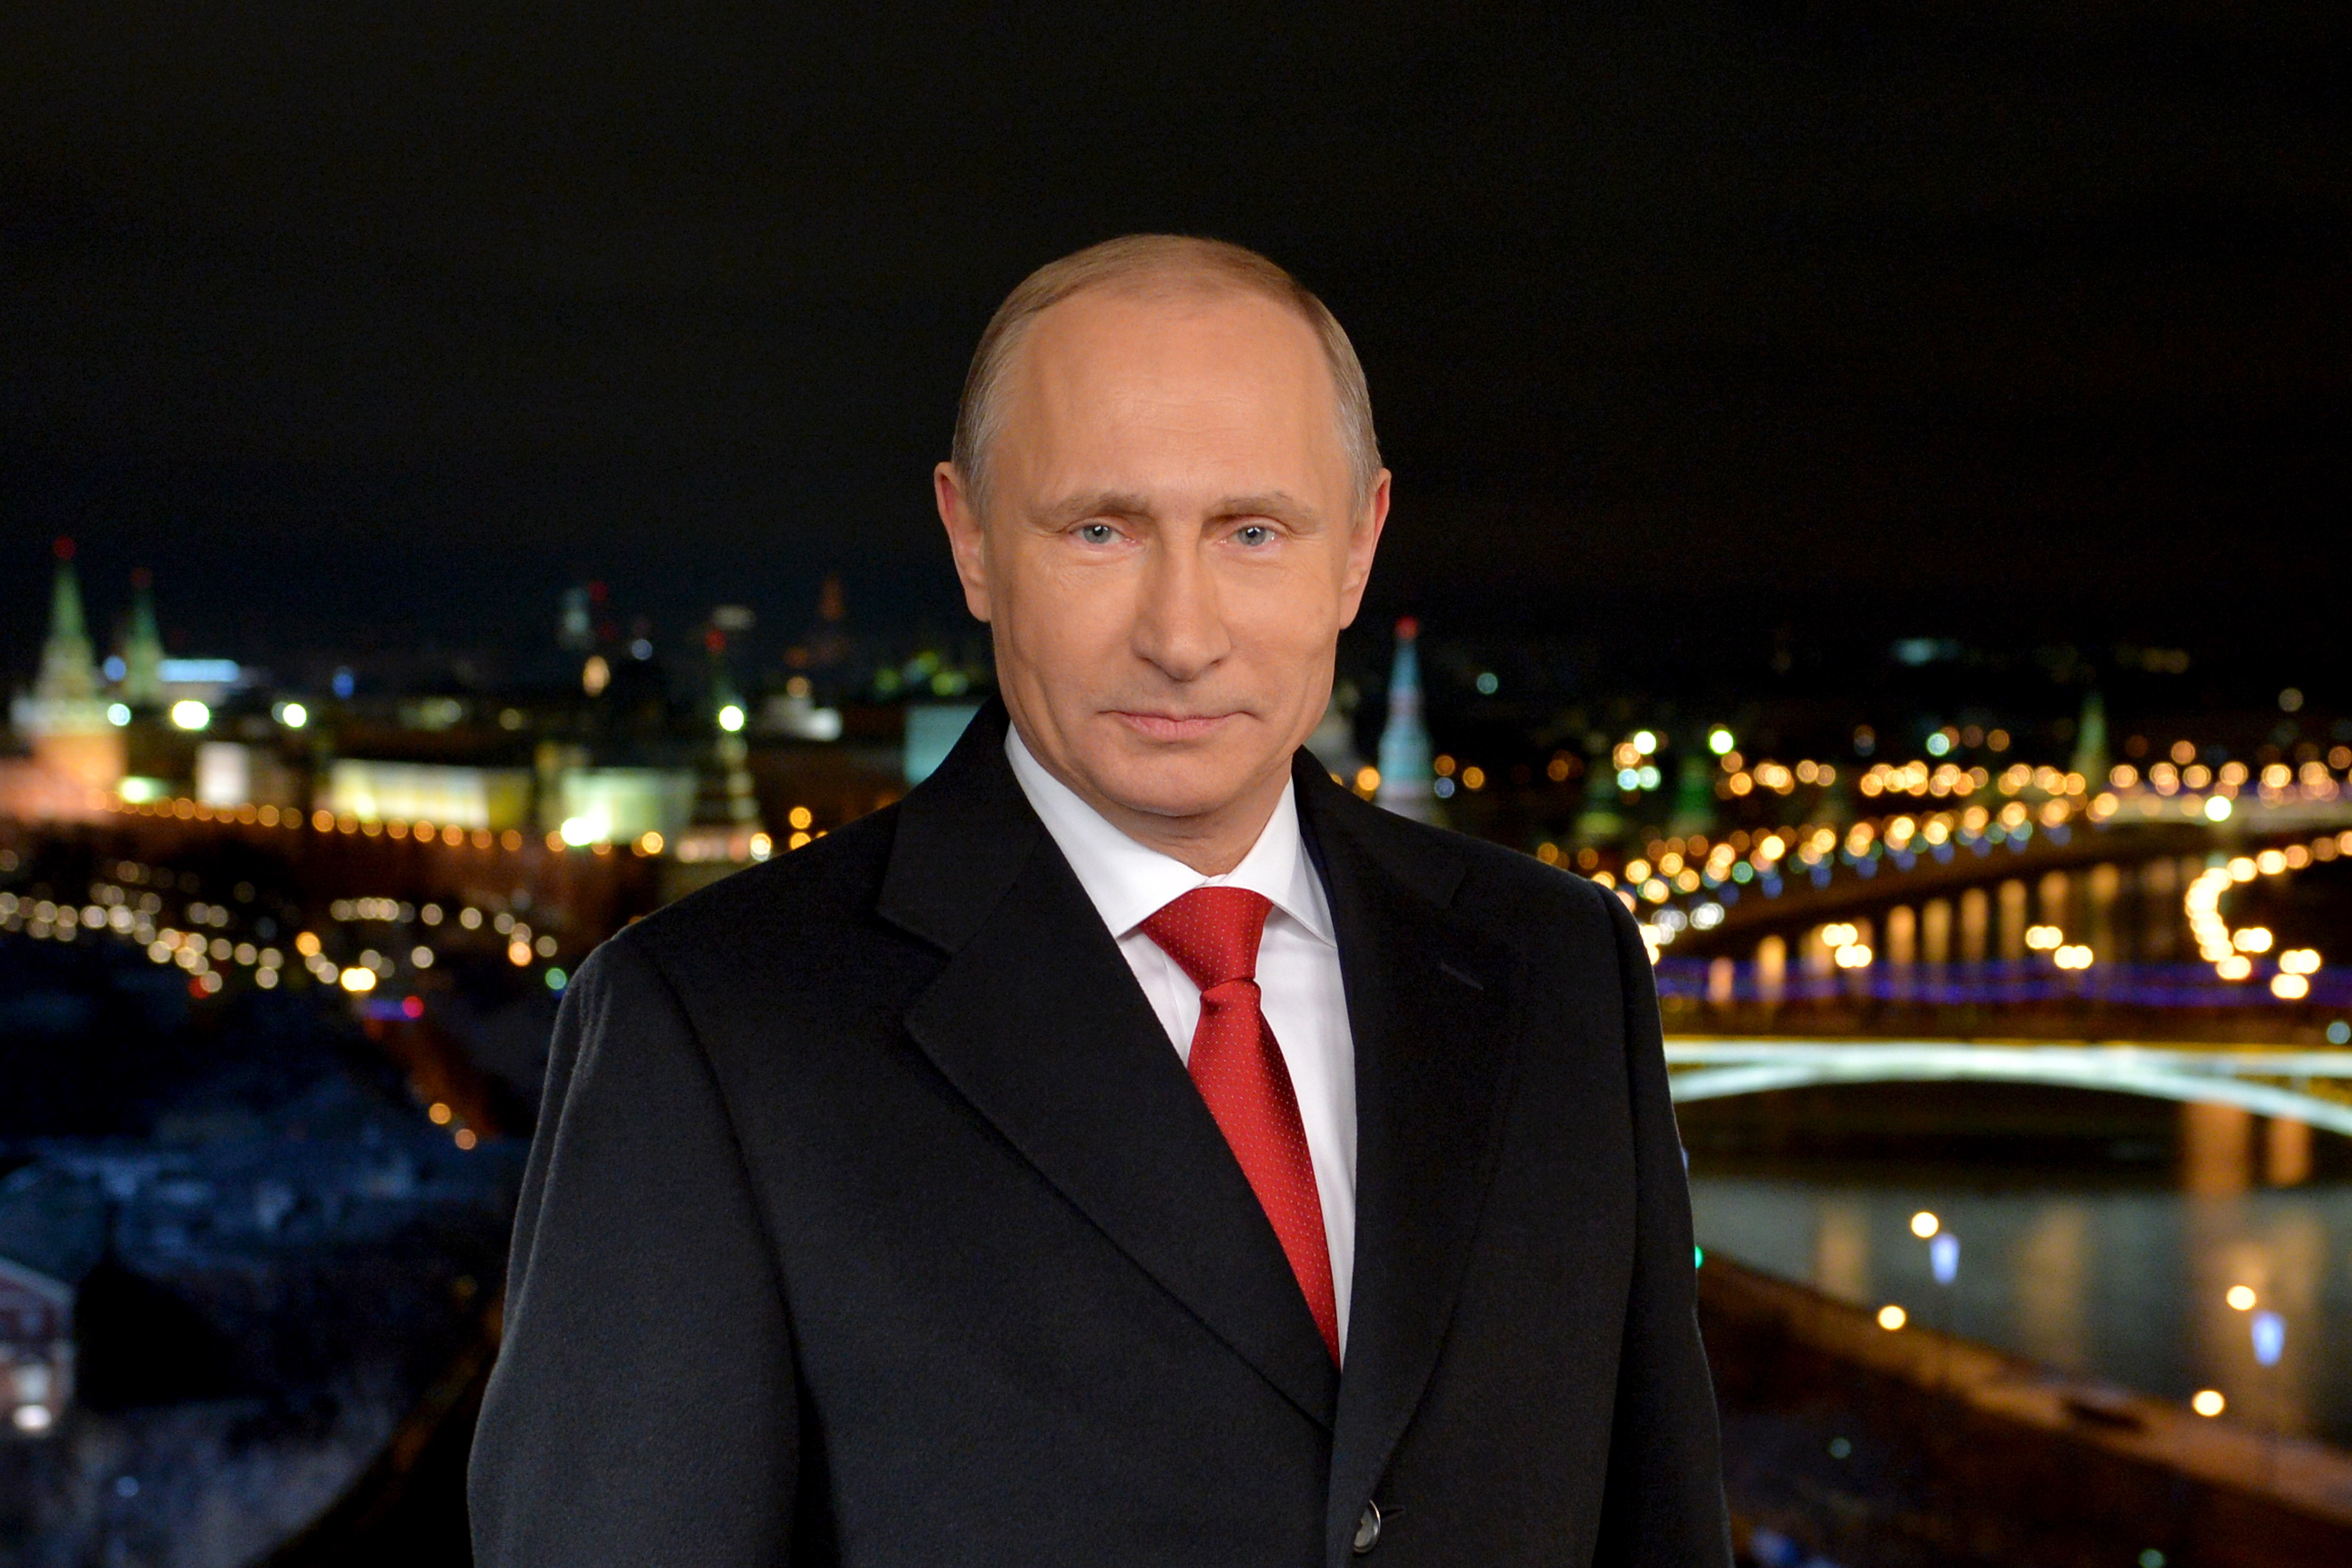 Vladimir Putin Wallpapers Images Photos Pictures Backgrounds